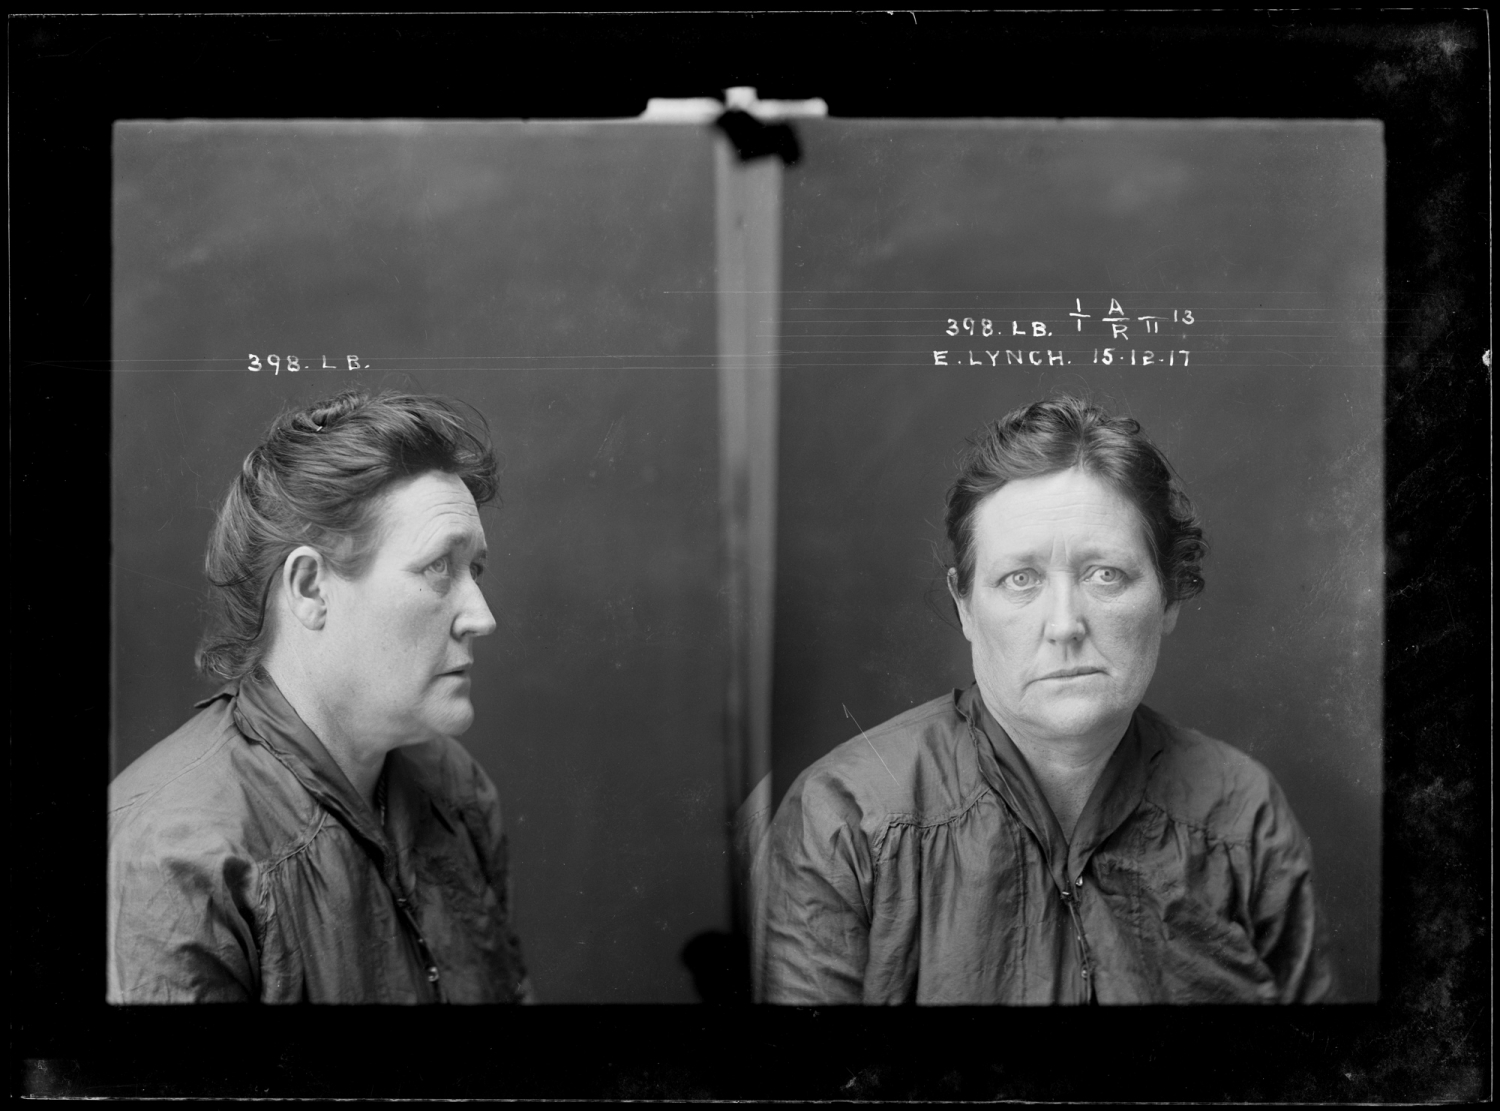 Side and front view mug shot of woman with hair up. Black and white photo